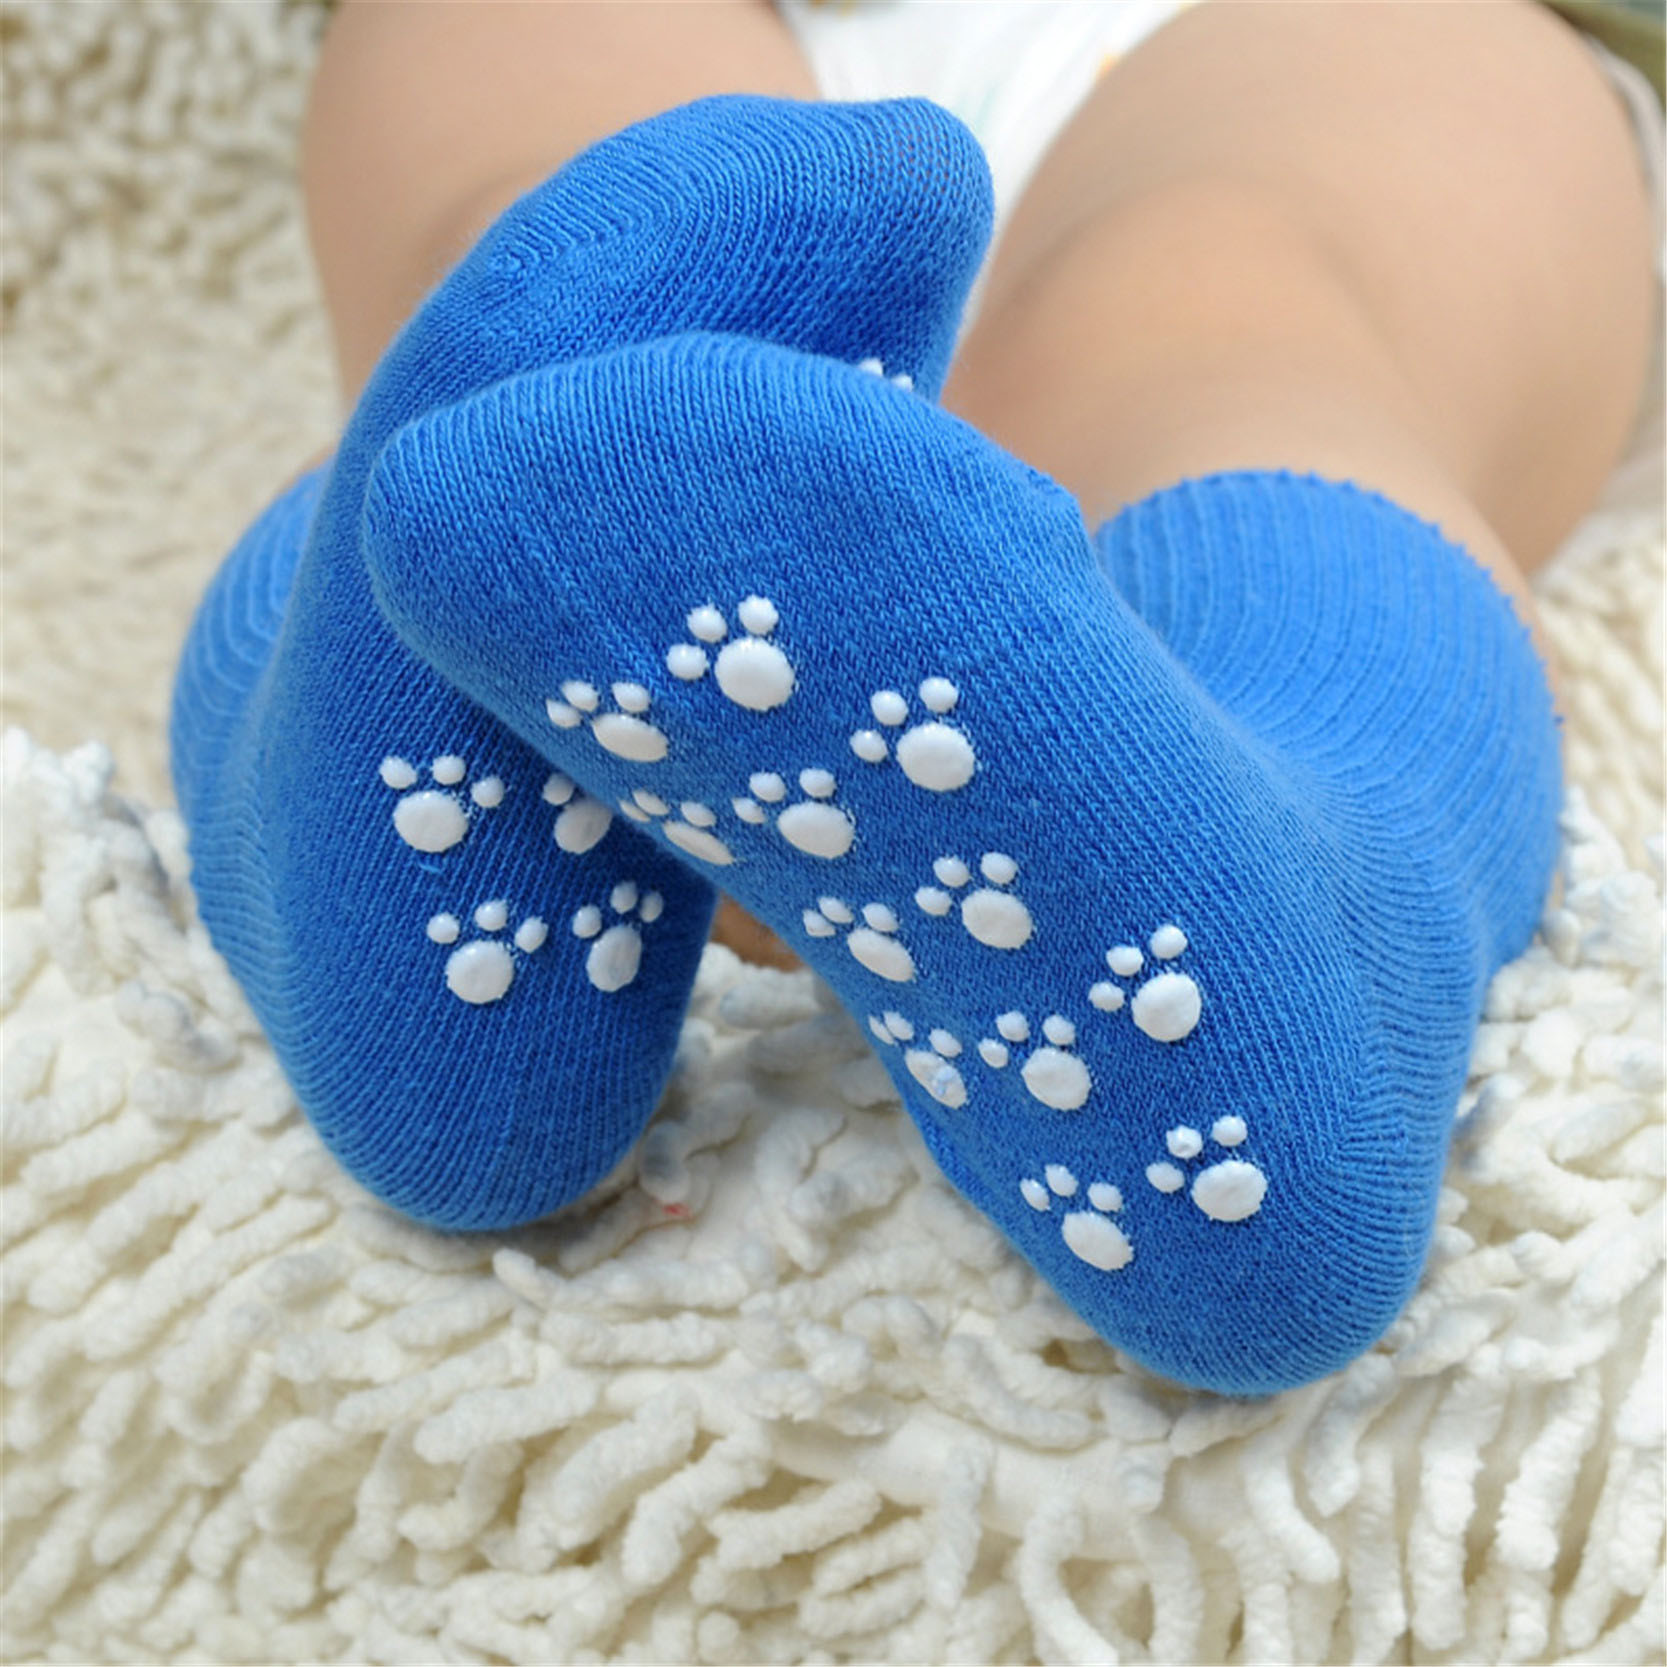 купить Candy Color Cotton Children Socks Baby Girls Boys Socks For 1-3 Year Sport Kids Socks Anti Slip по цене 64.6 рублей